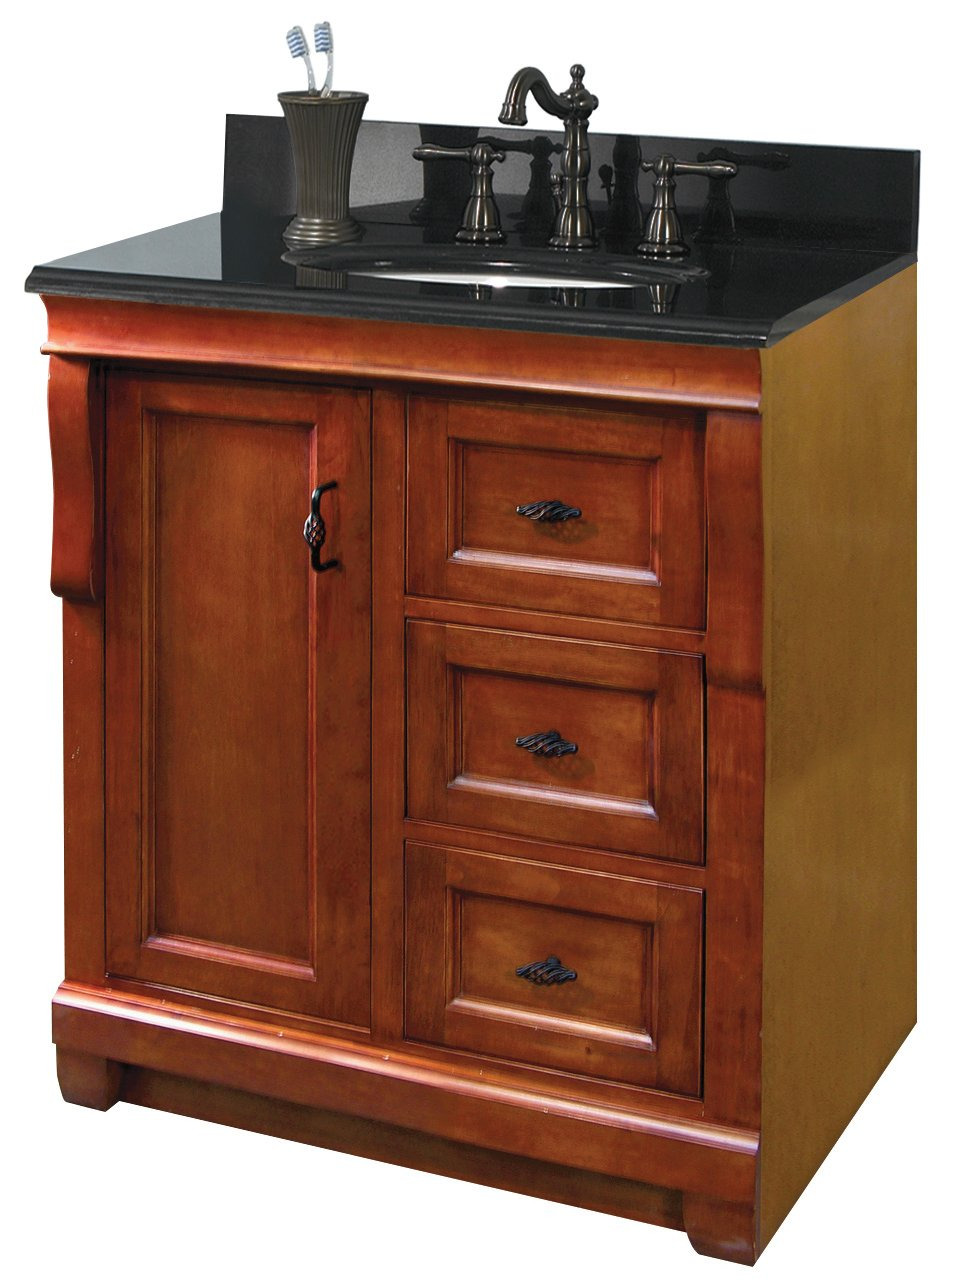 30 Inch Bathroom Vanities 30 Inch Bathroom Vanities At Home Depot 30 Inch Bathroom Vanities